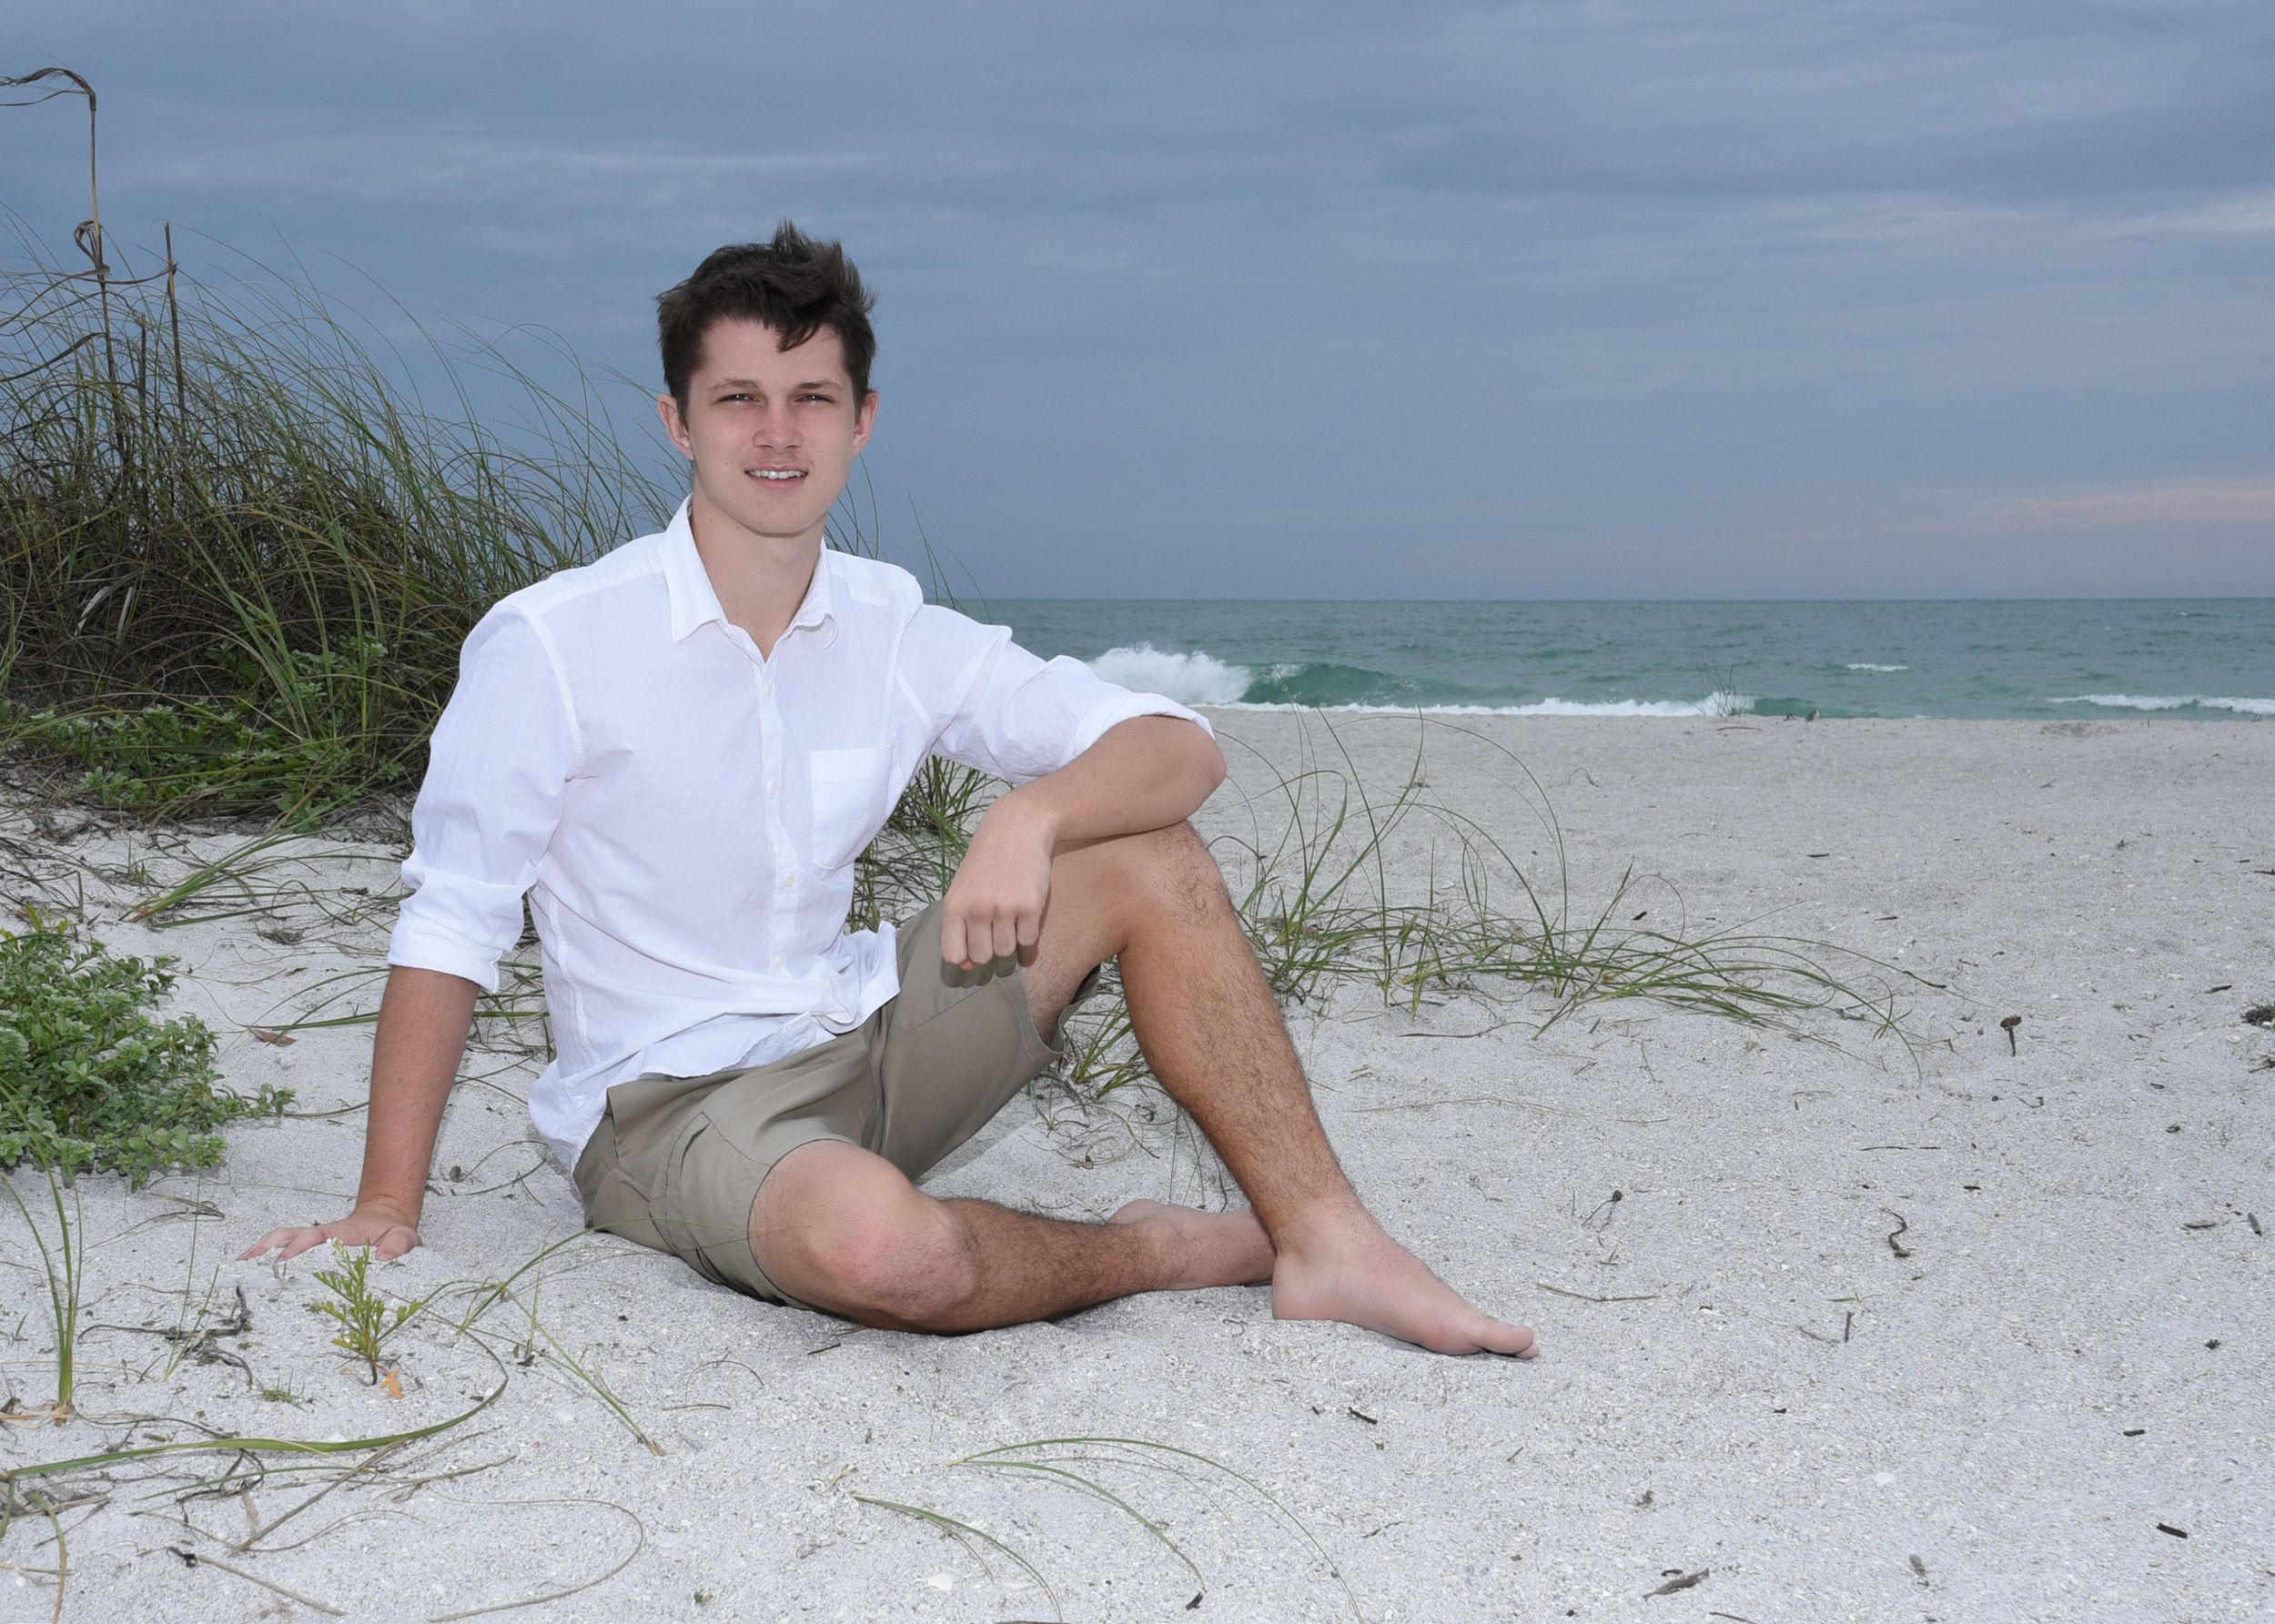 Male high school senior Tarpon Springs beach Florida by Kathleen Hall Photography